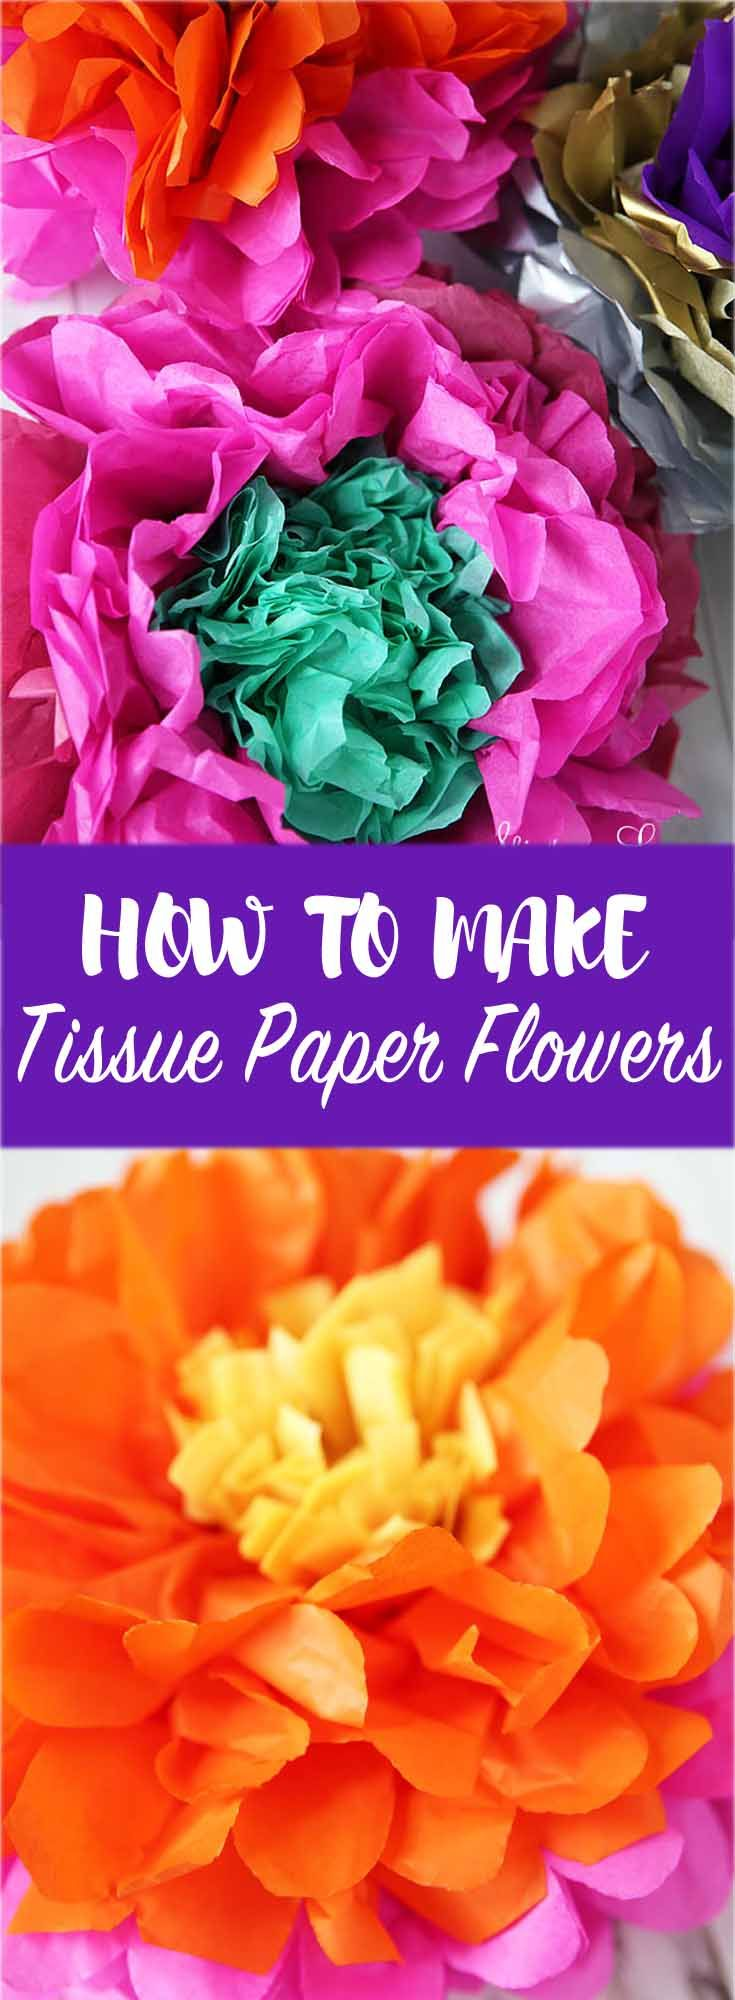 How to make tissue paper flowers! These inexpensive and easy flowers make a pretty decoration and a big impact.